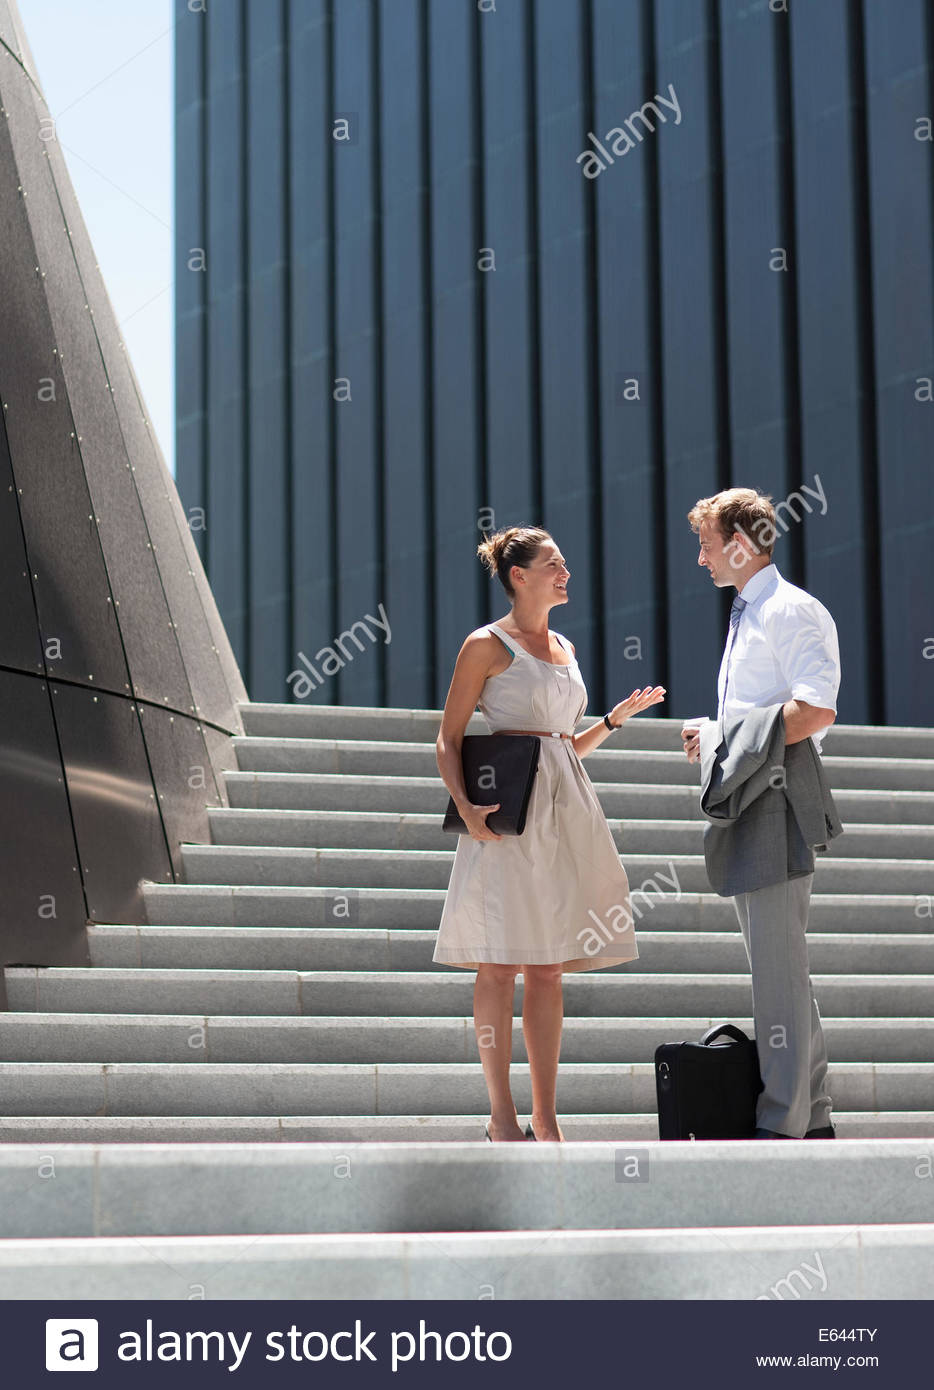 Business people talking on steps outdoors - Stock Image